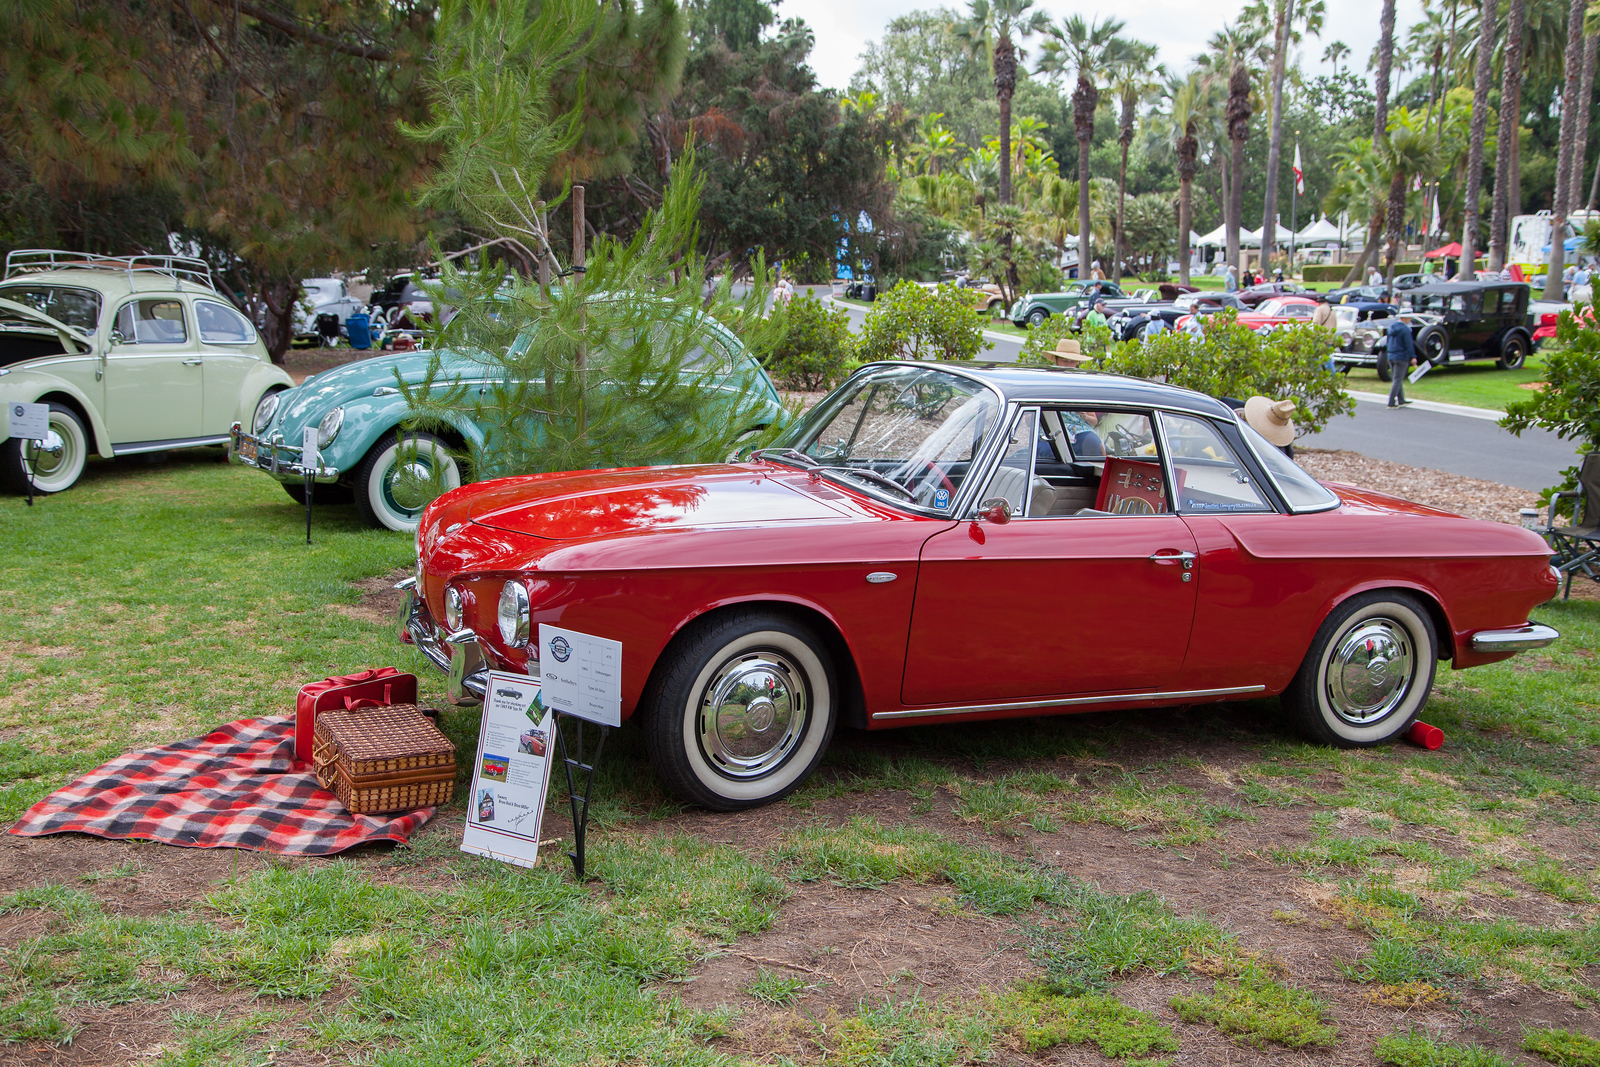 1963 Volkswagen Type 34 Ghia, owned by Bruce Hoel